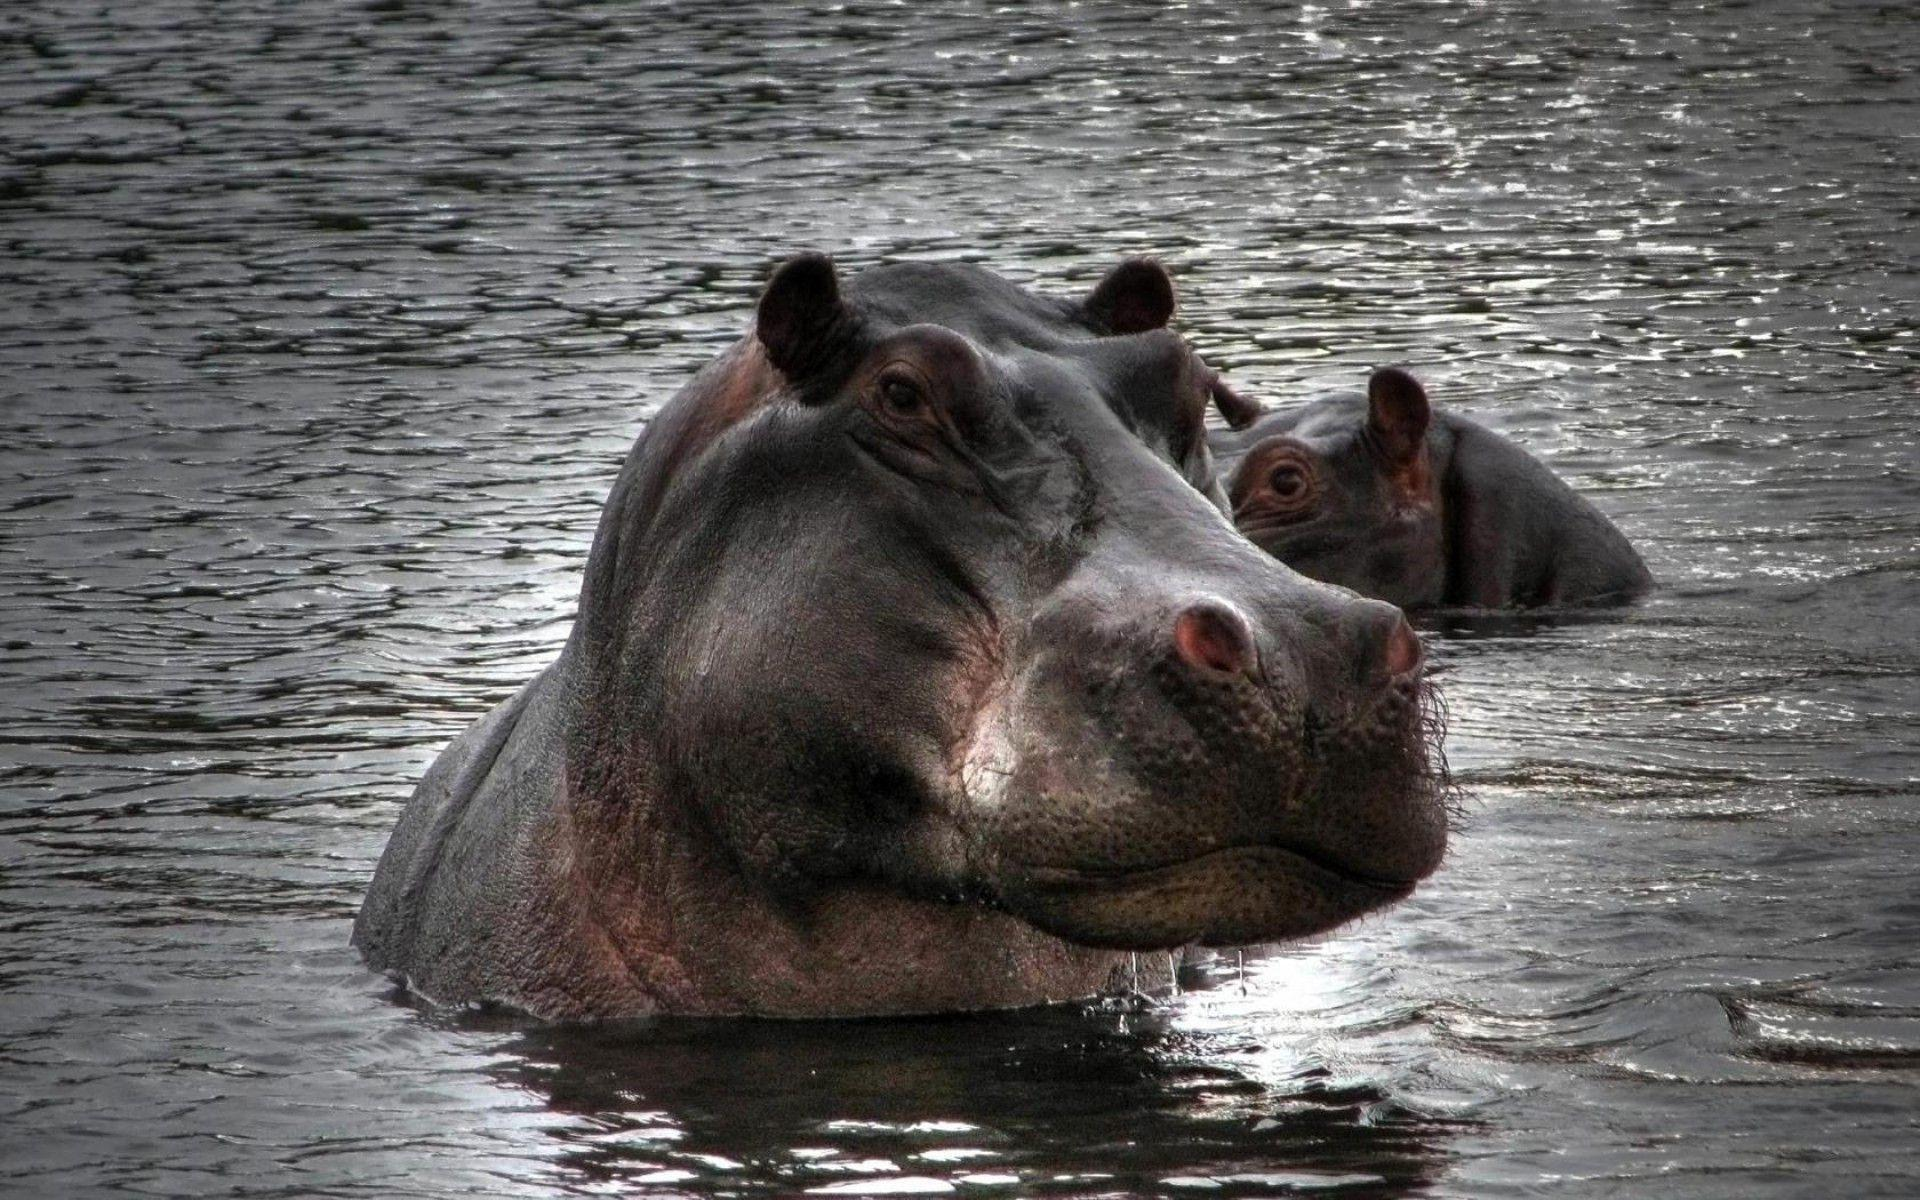 Hippopotamus Images | Sky HD Wallpaper